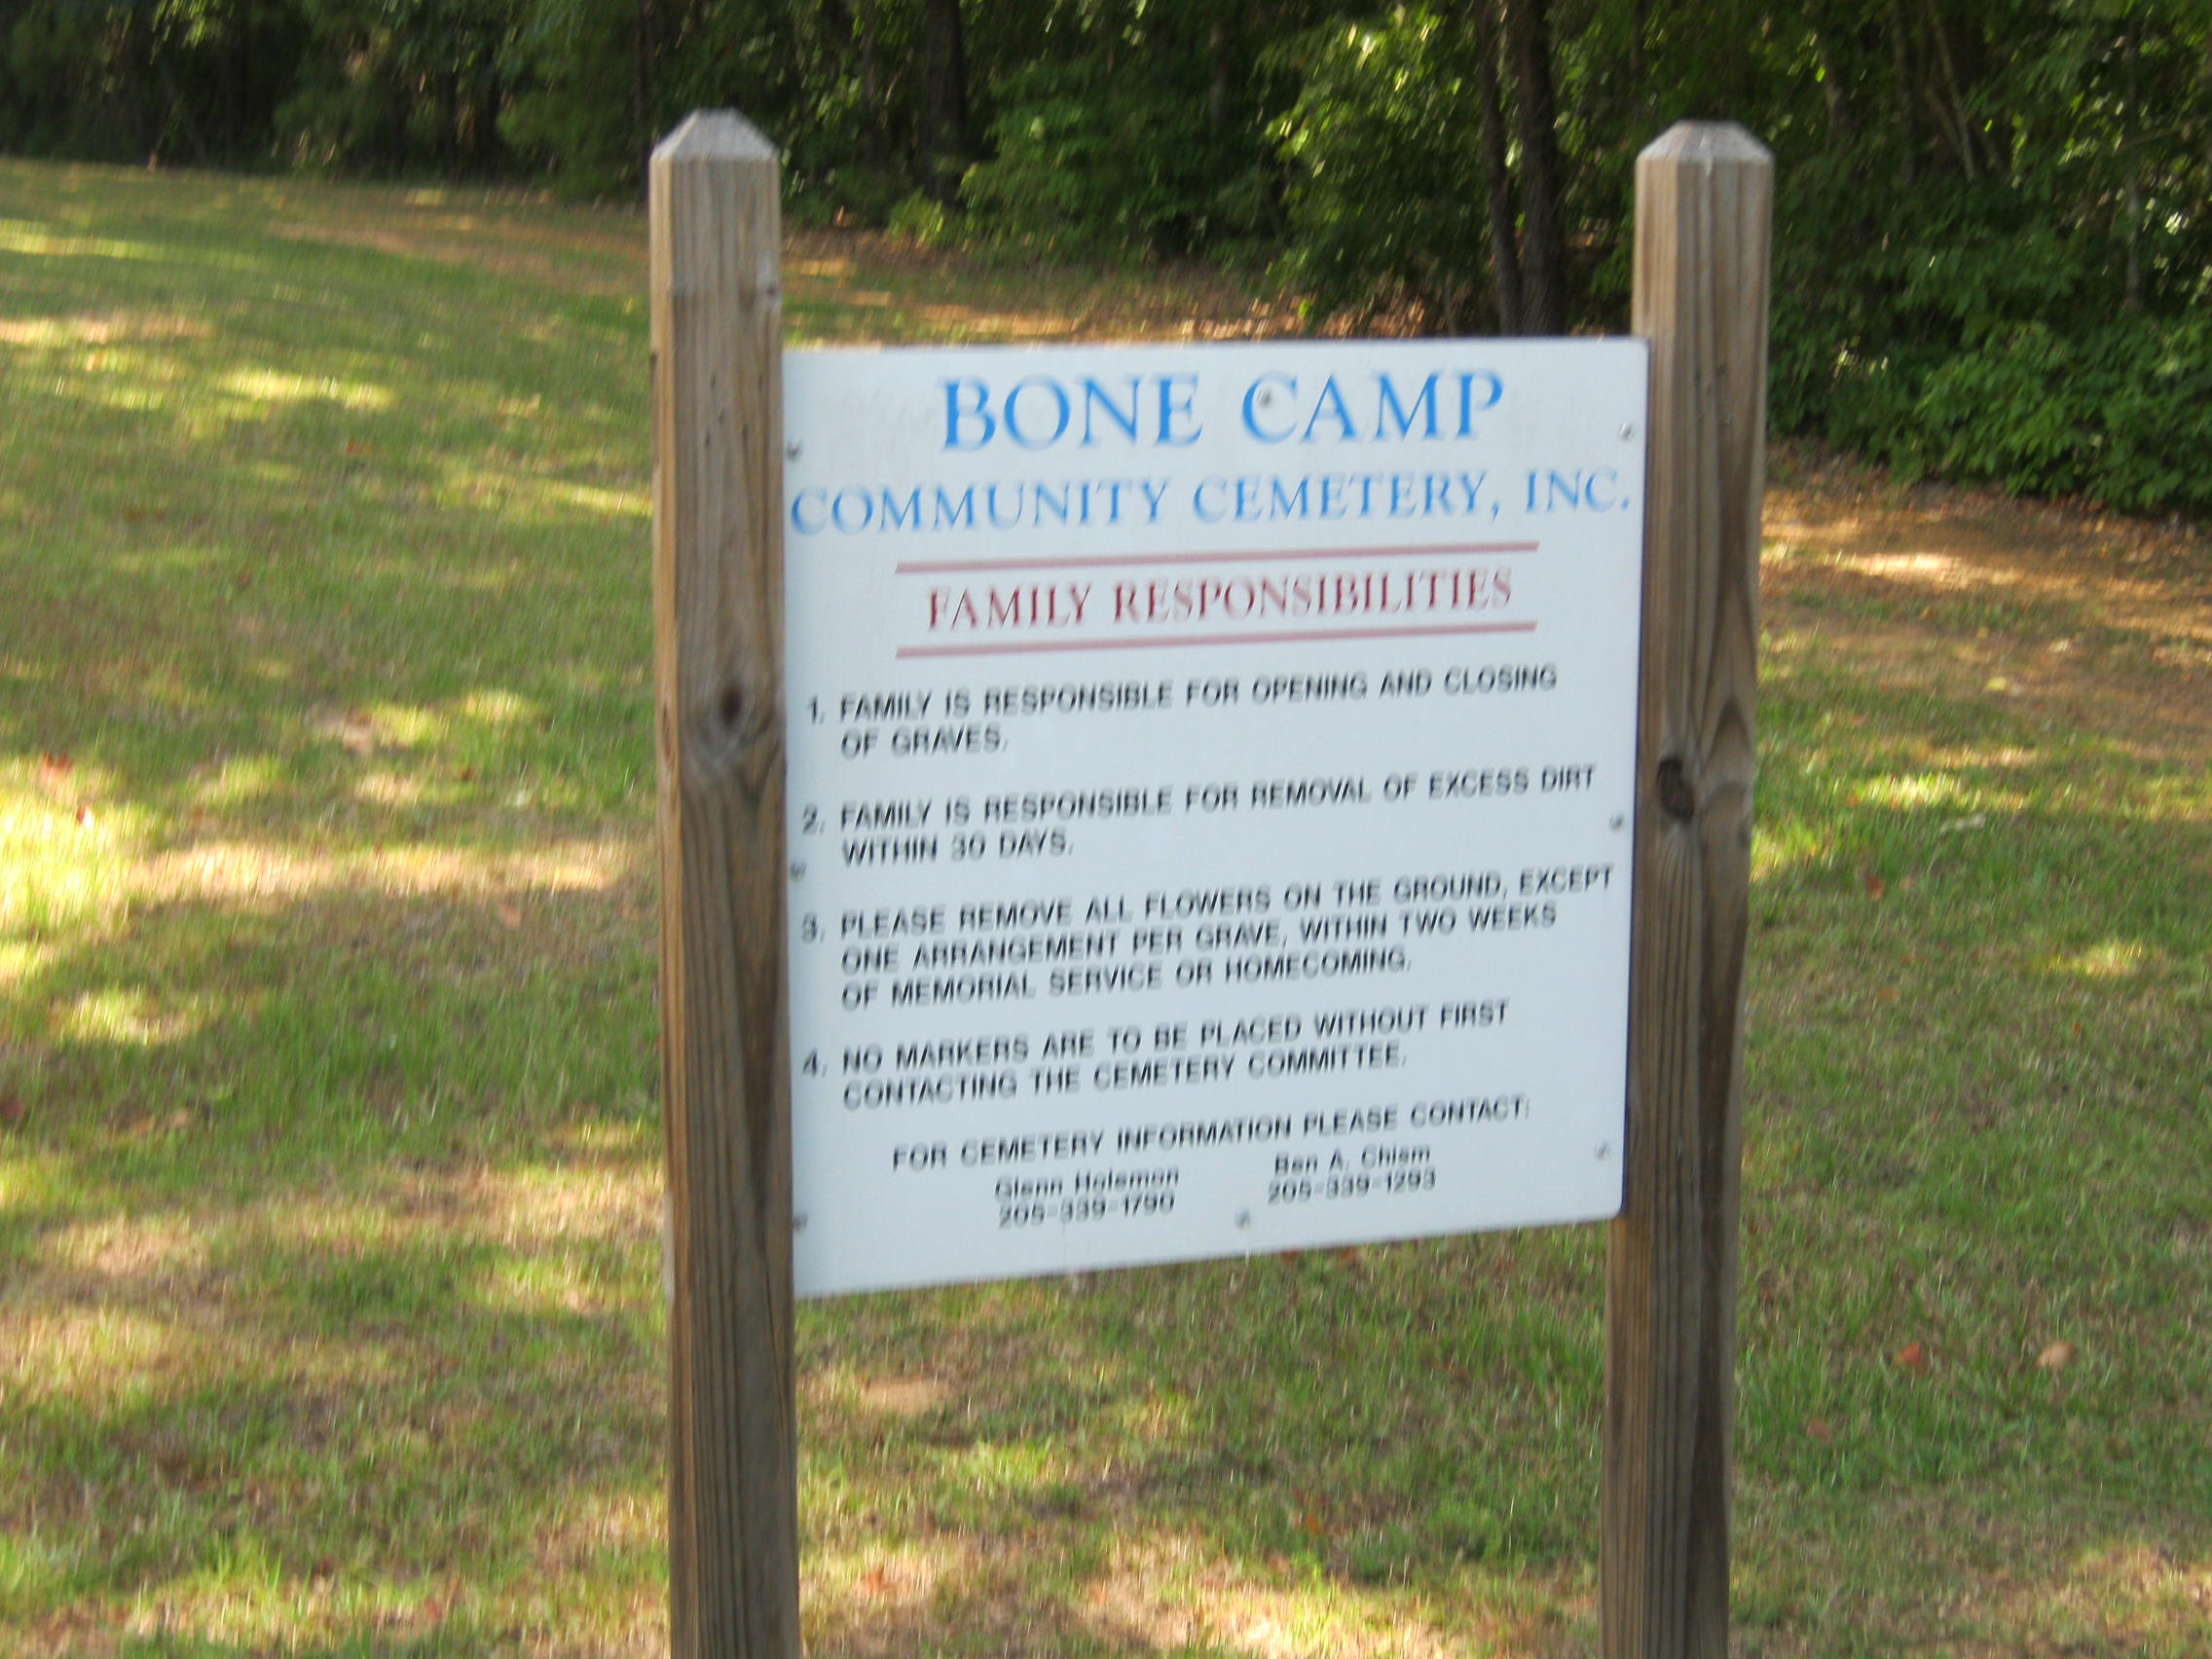 Bone Camp Cemetery